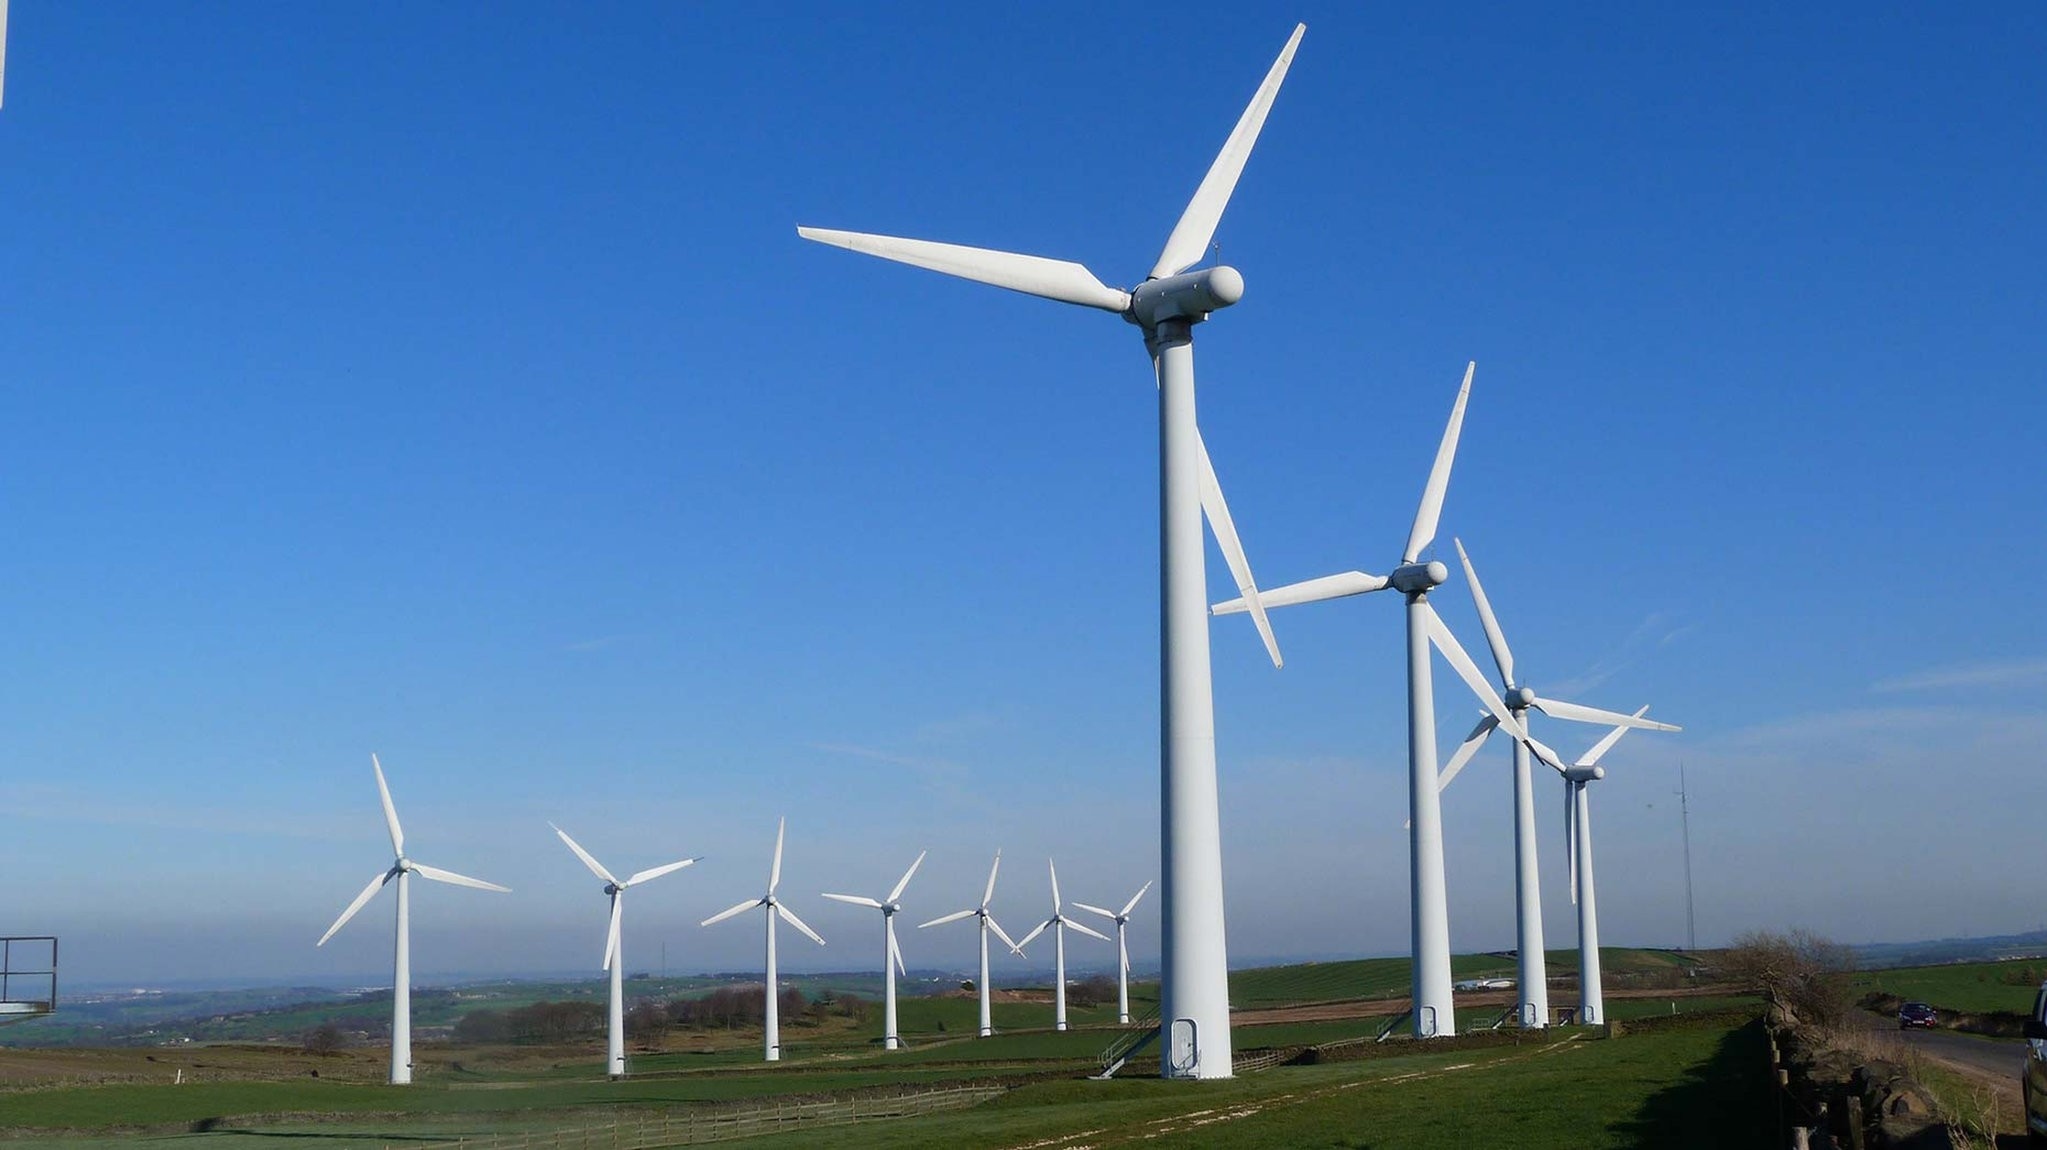 The share of renewable energy in electricity generation reached 32 percent in the third quarter of 2017, surpassing the target of 30 percent that was set for 2023.